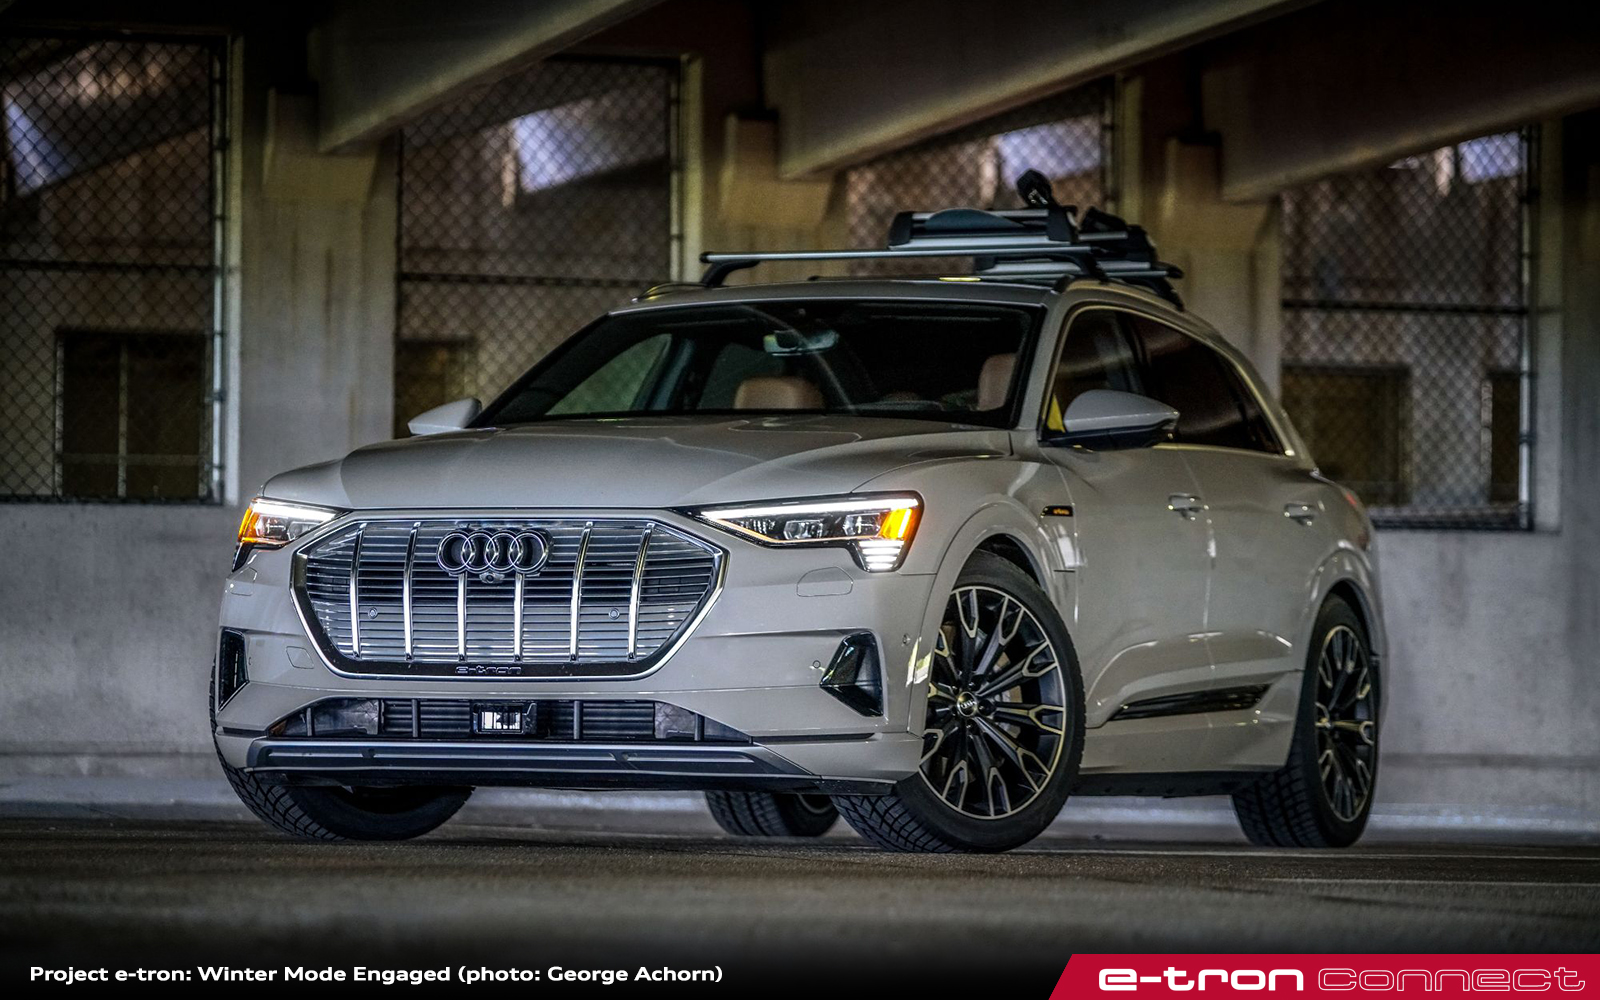 Project e-tron: Winter Mode Engaged